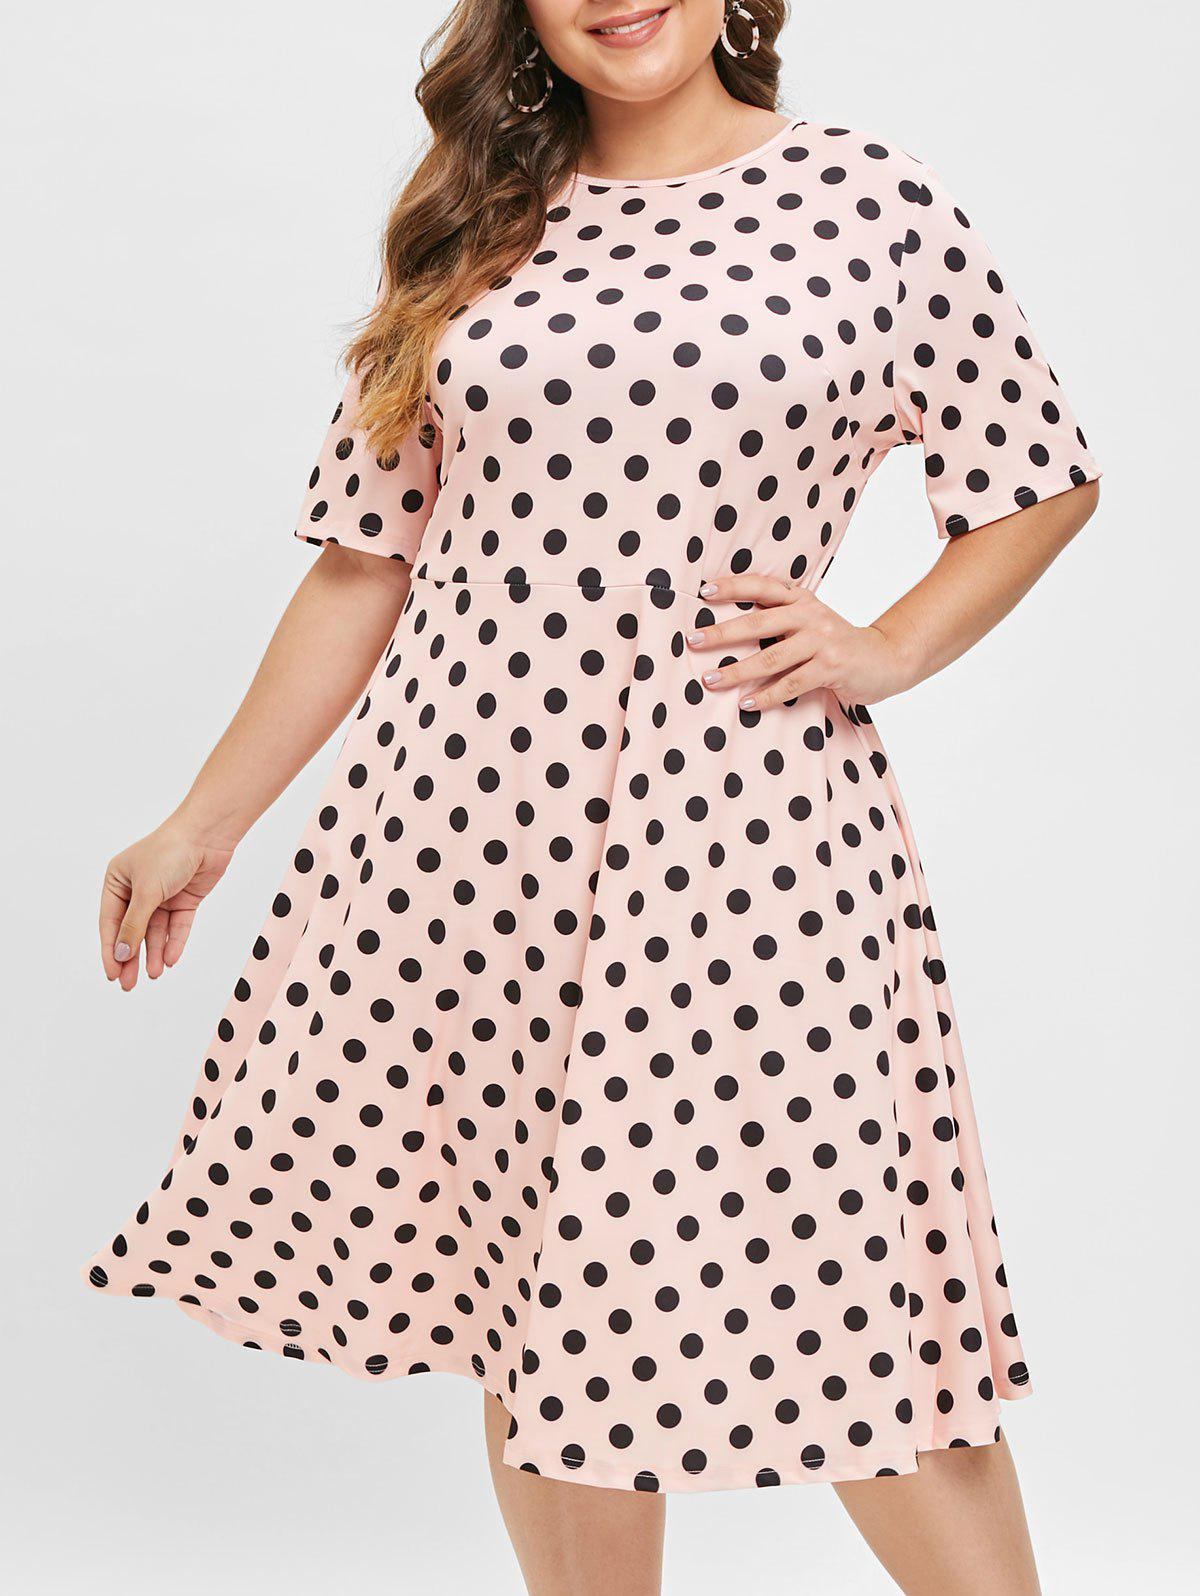 Sale Polka Dot Plus Size Round Neck A Line Dress